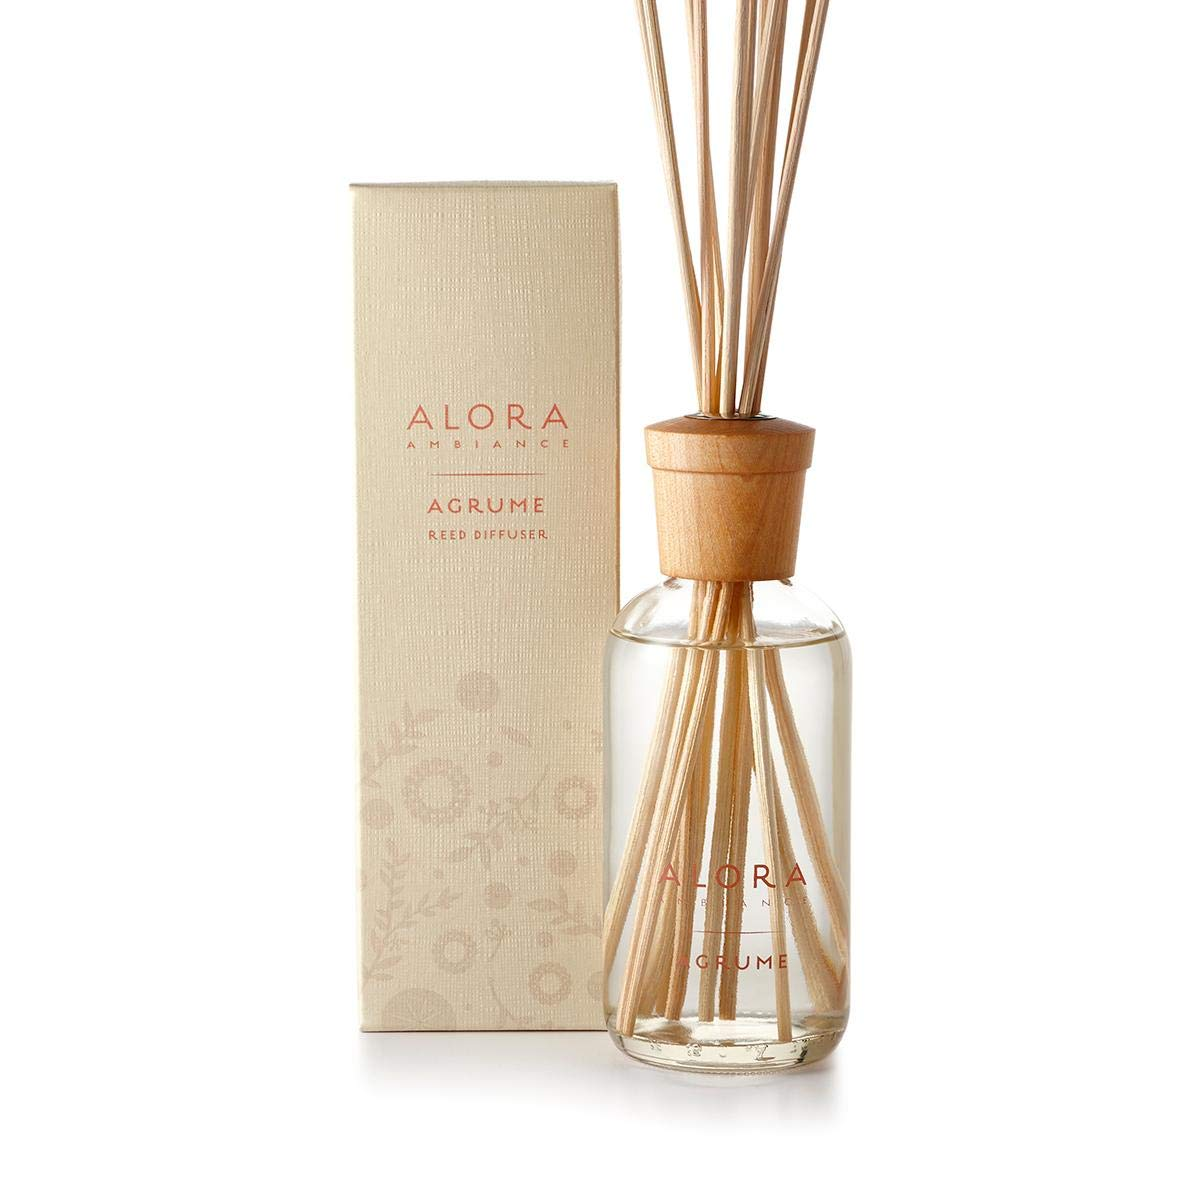 Alora Ambiance Reed Diffuser Agrume, 8 Oz by AloraAmbiance (Image #1)